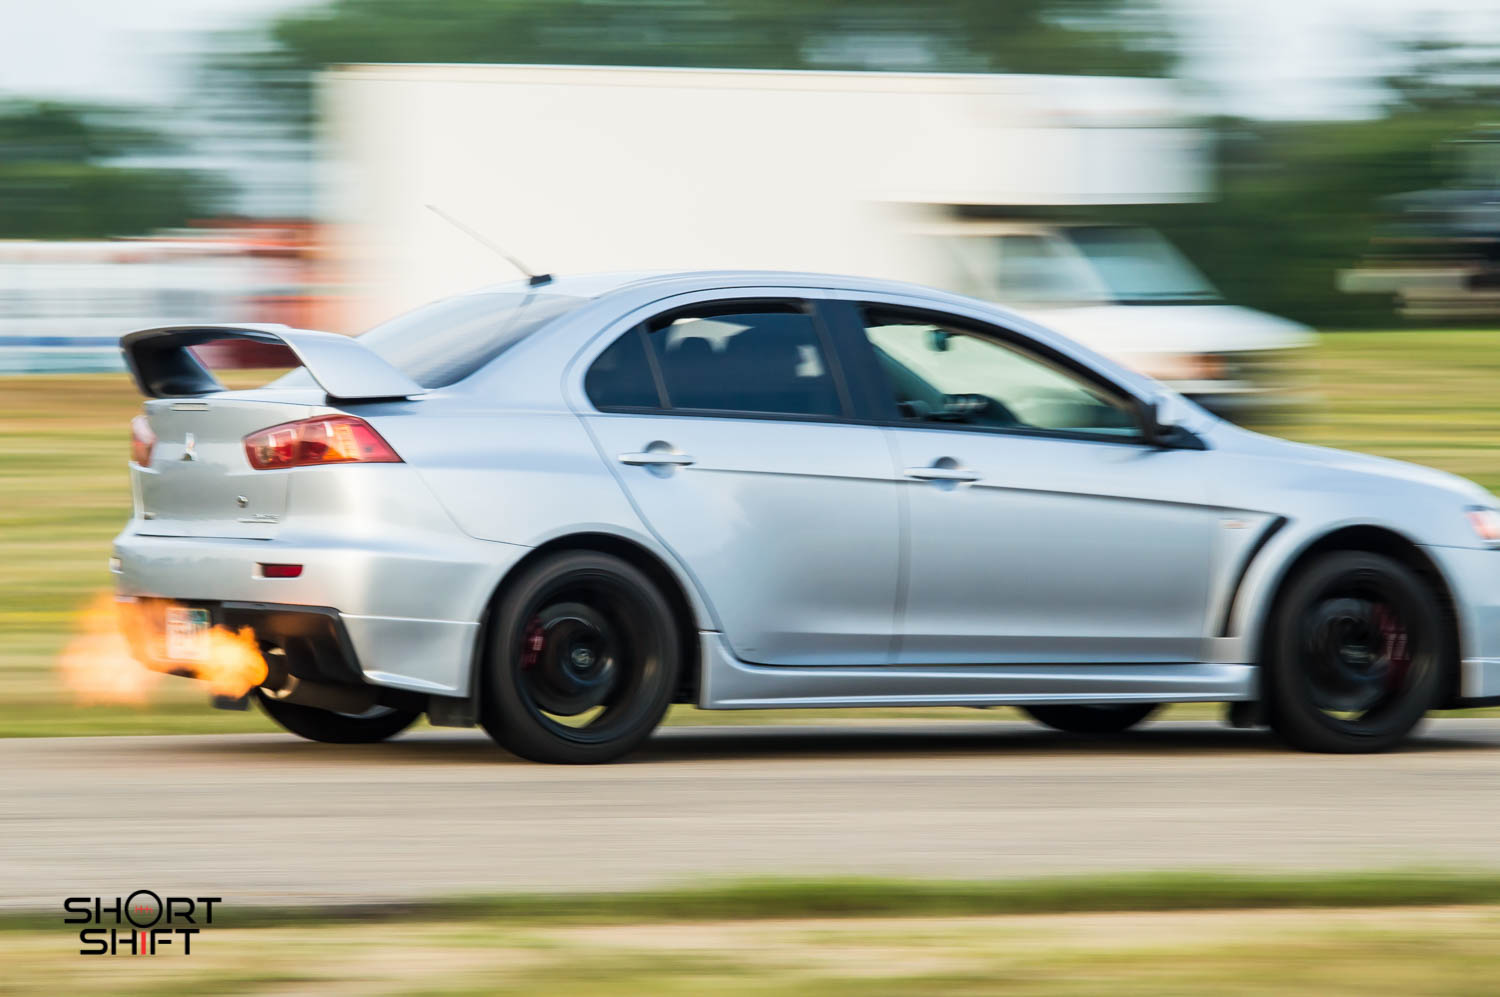 RS Motors Autocross - August 2014